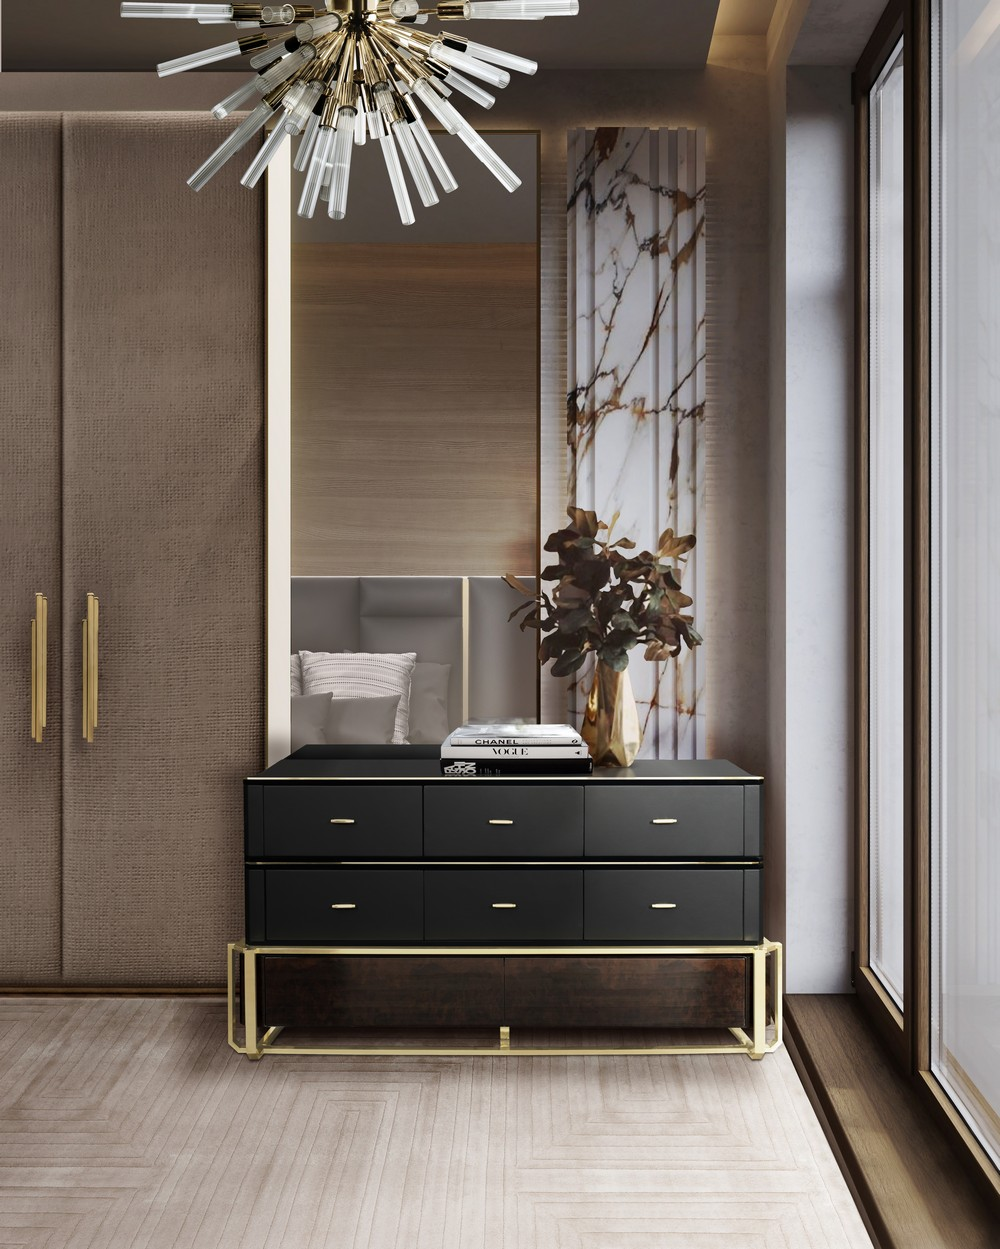 Renew Your Bedroom Furniture Designs with Decorative Hardware 6 bedroom furniture Renew Your Bedroom Furniture Designs with Decorative Hardware Renew Your Bedroom Furniture Designs with Decorative Hardware 6